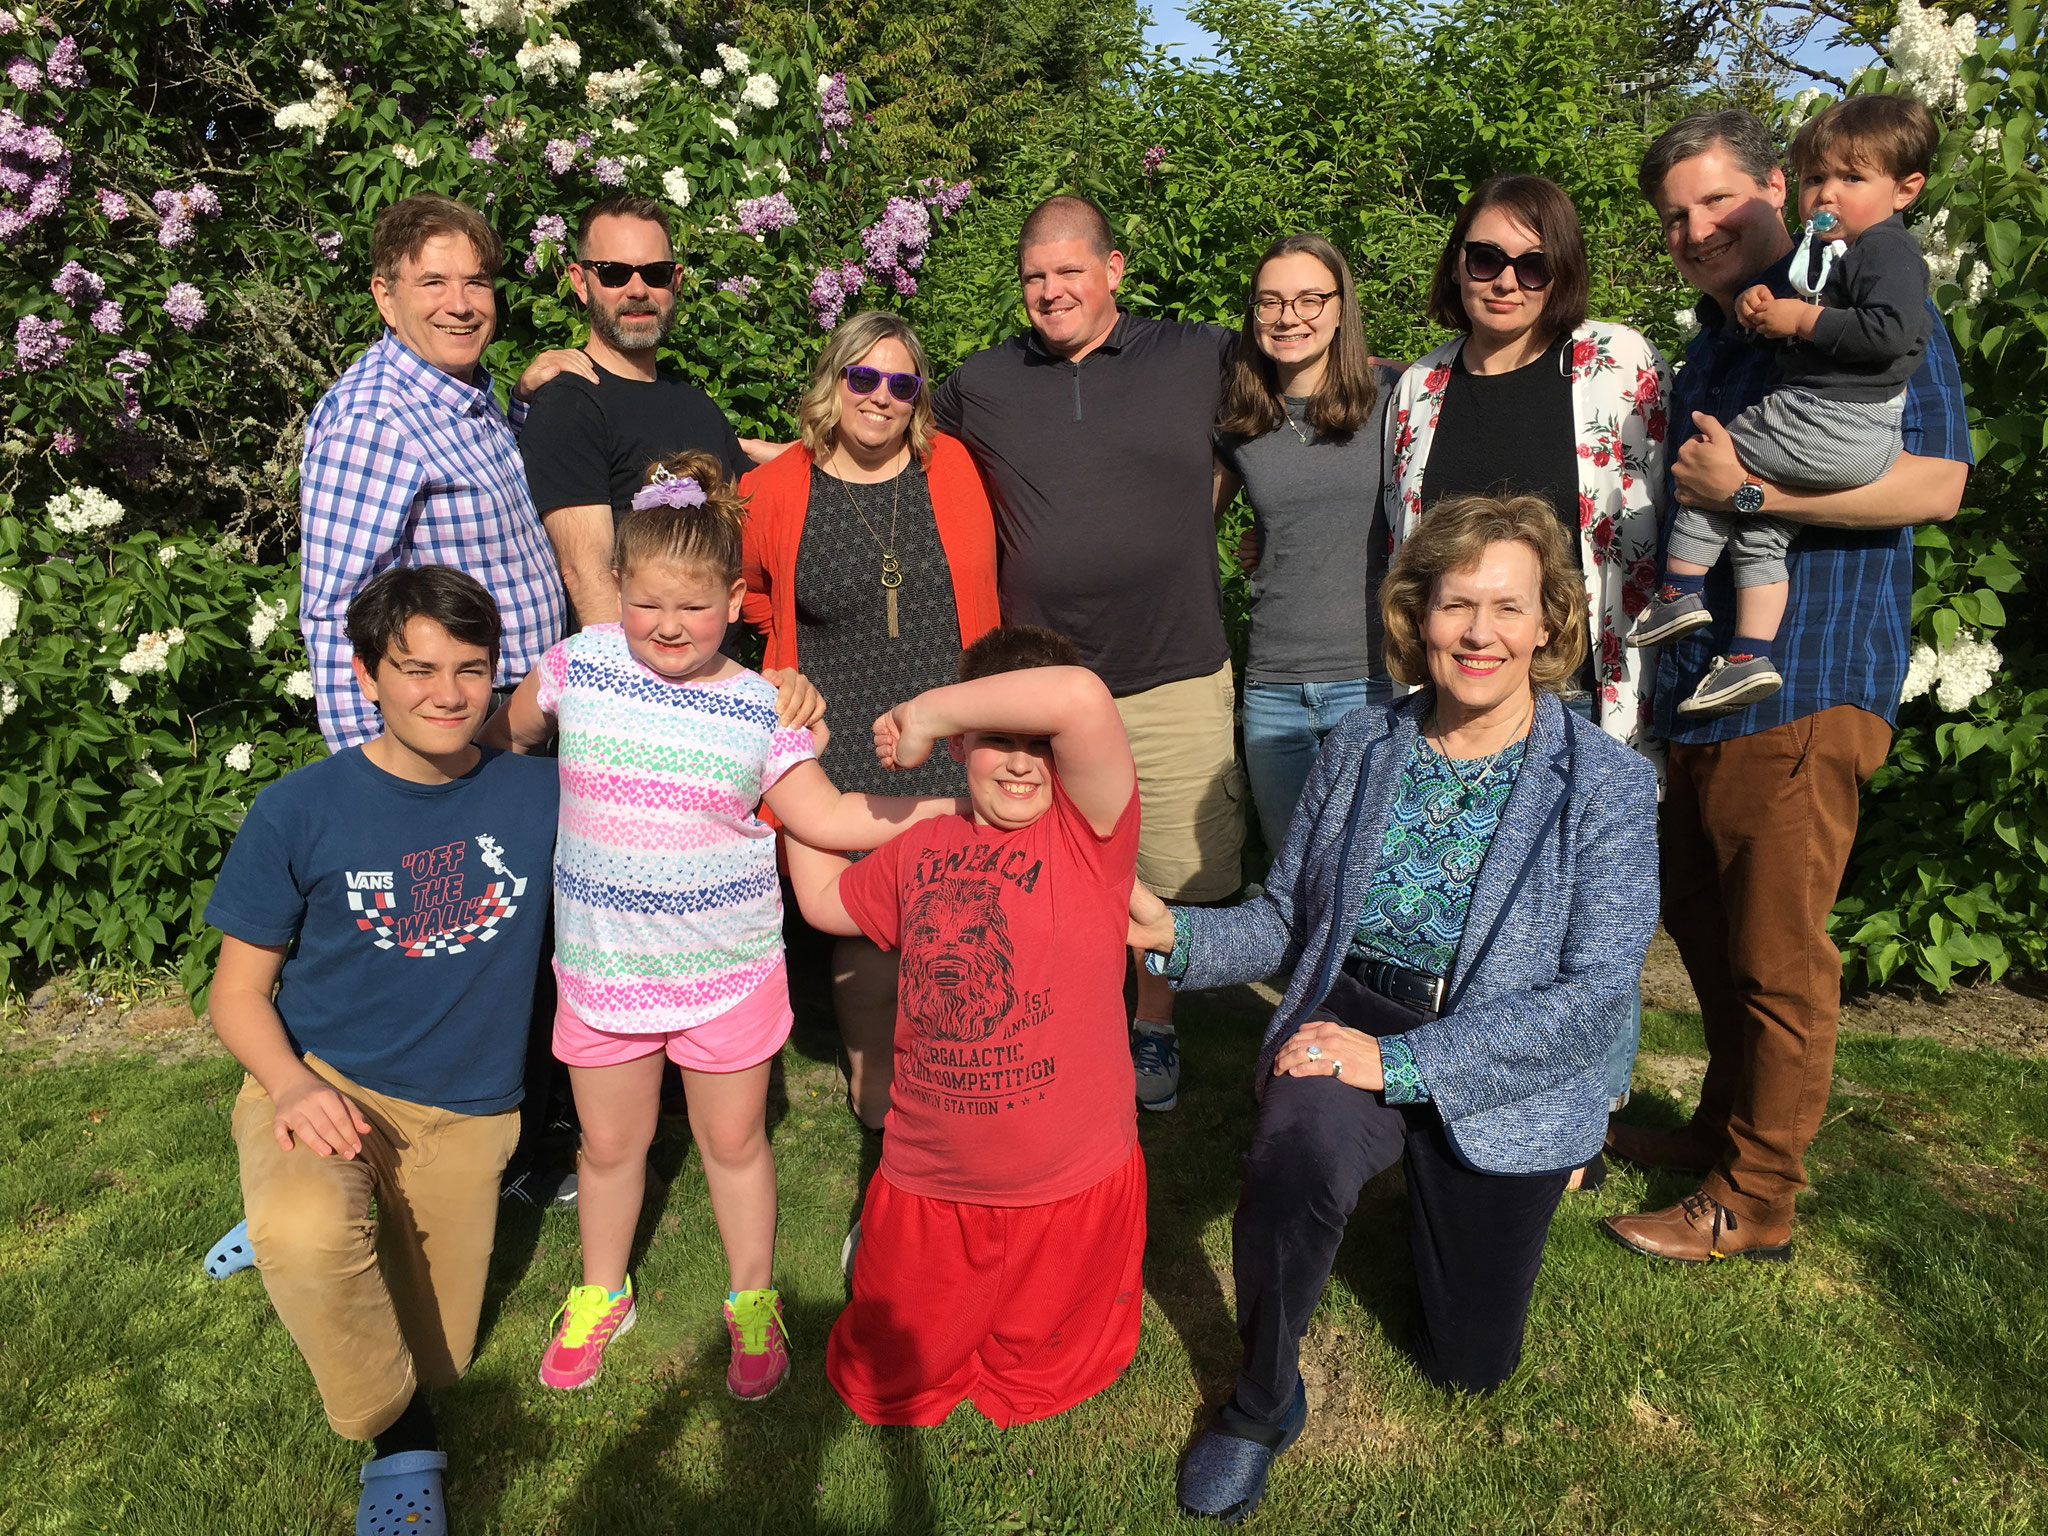 Visiting with Meg, Erin & Stephen & families, Seattle, WA May, 2019